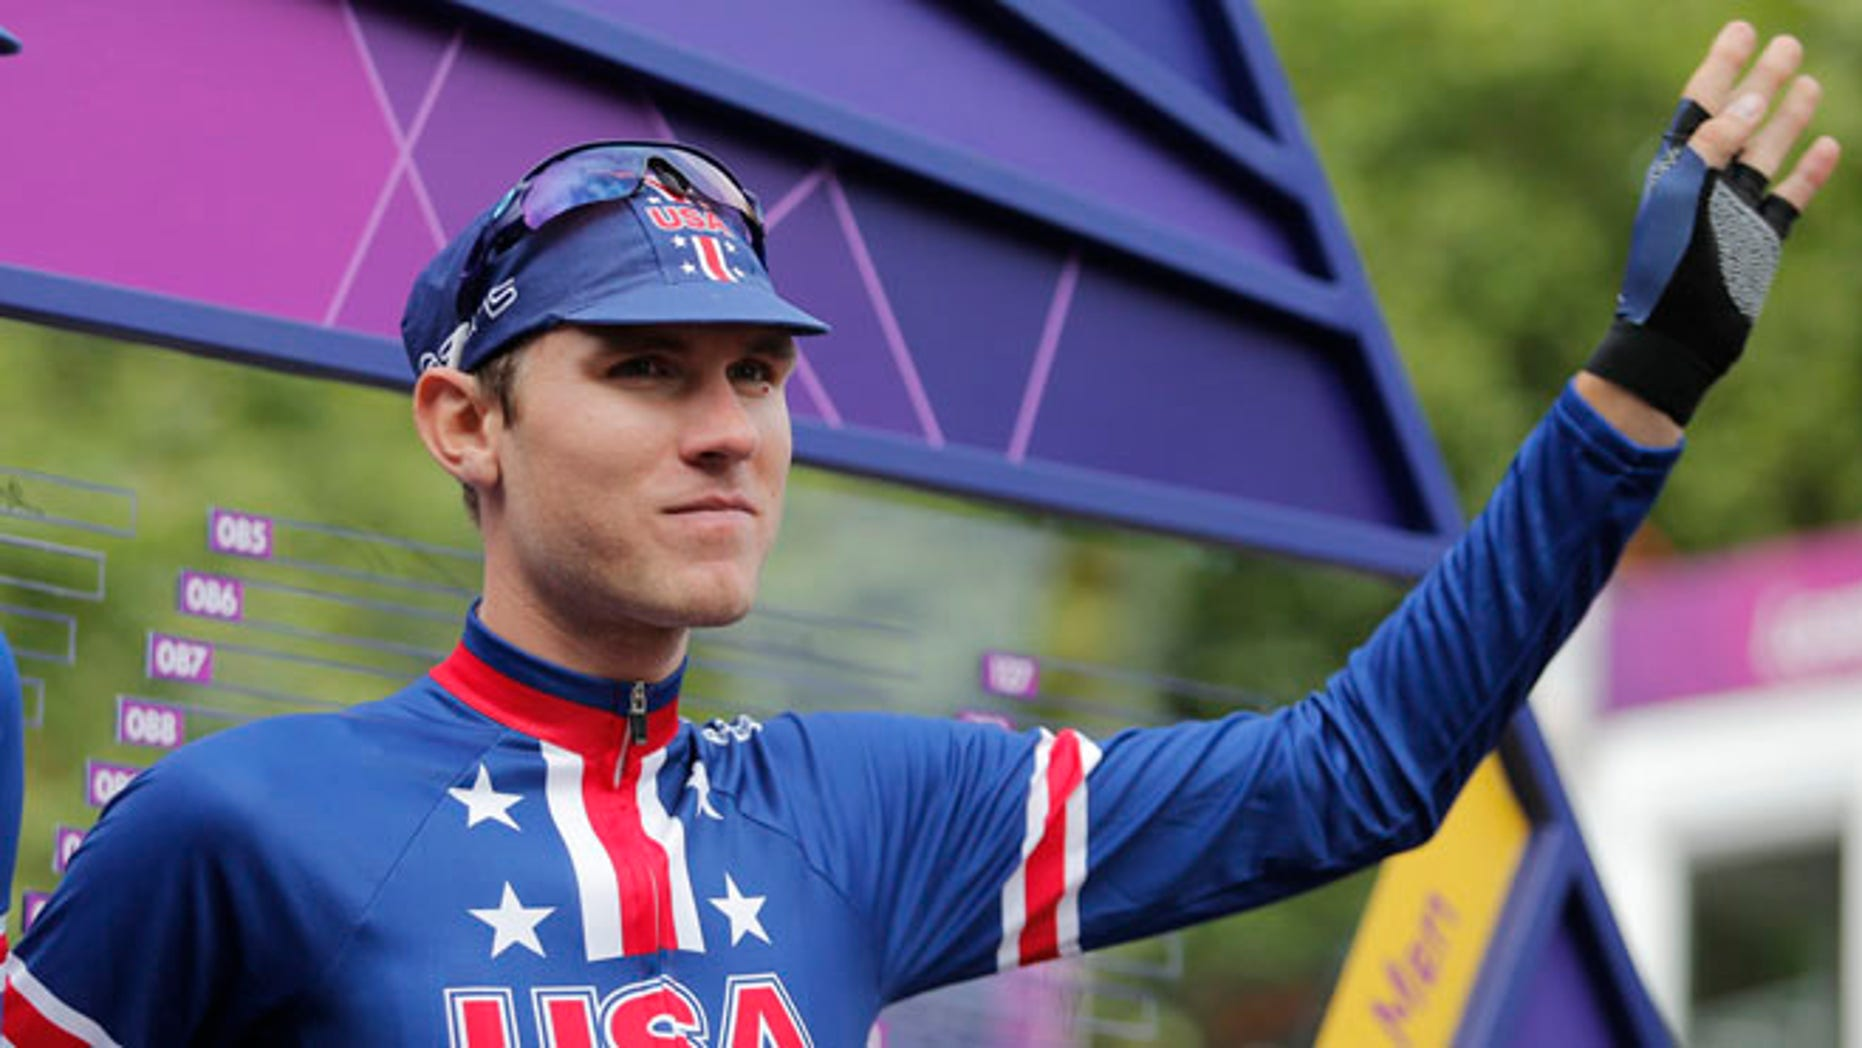 FILE - In this July 28, 2012, file photo, U.S. cyclist Tejay van Garderen, right, is flanked by Taylor Phinney as he waves before the the Men's Road Cycling race at the 2012 Summer Olympics, in London. American cyclist Tejay van Garderen has withdrawn his name from consideration for the Rio Olympics amid concerns that he may contract the Zika virus and pass it along to his pregnant wife. (AP Photo/Christophe Ena, File)